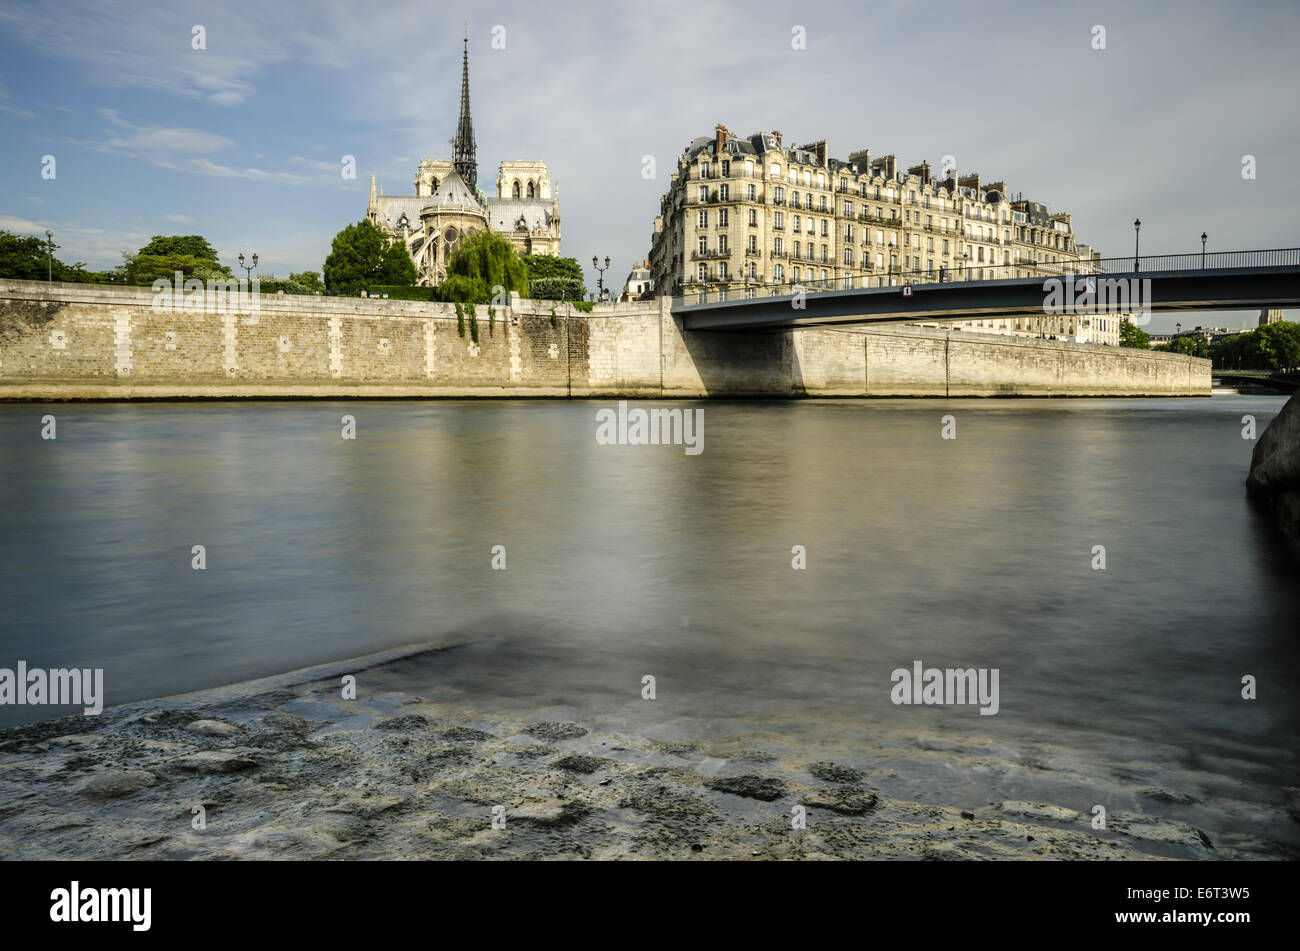 Seine river and Notre Dame de Paris in the background - Stock Image